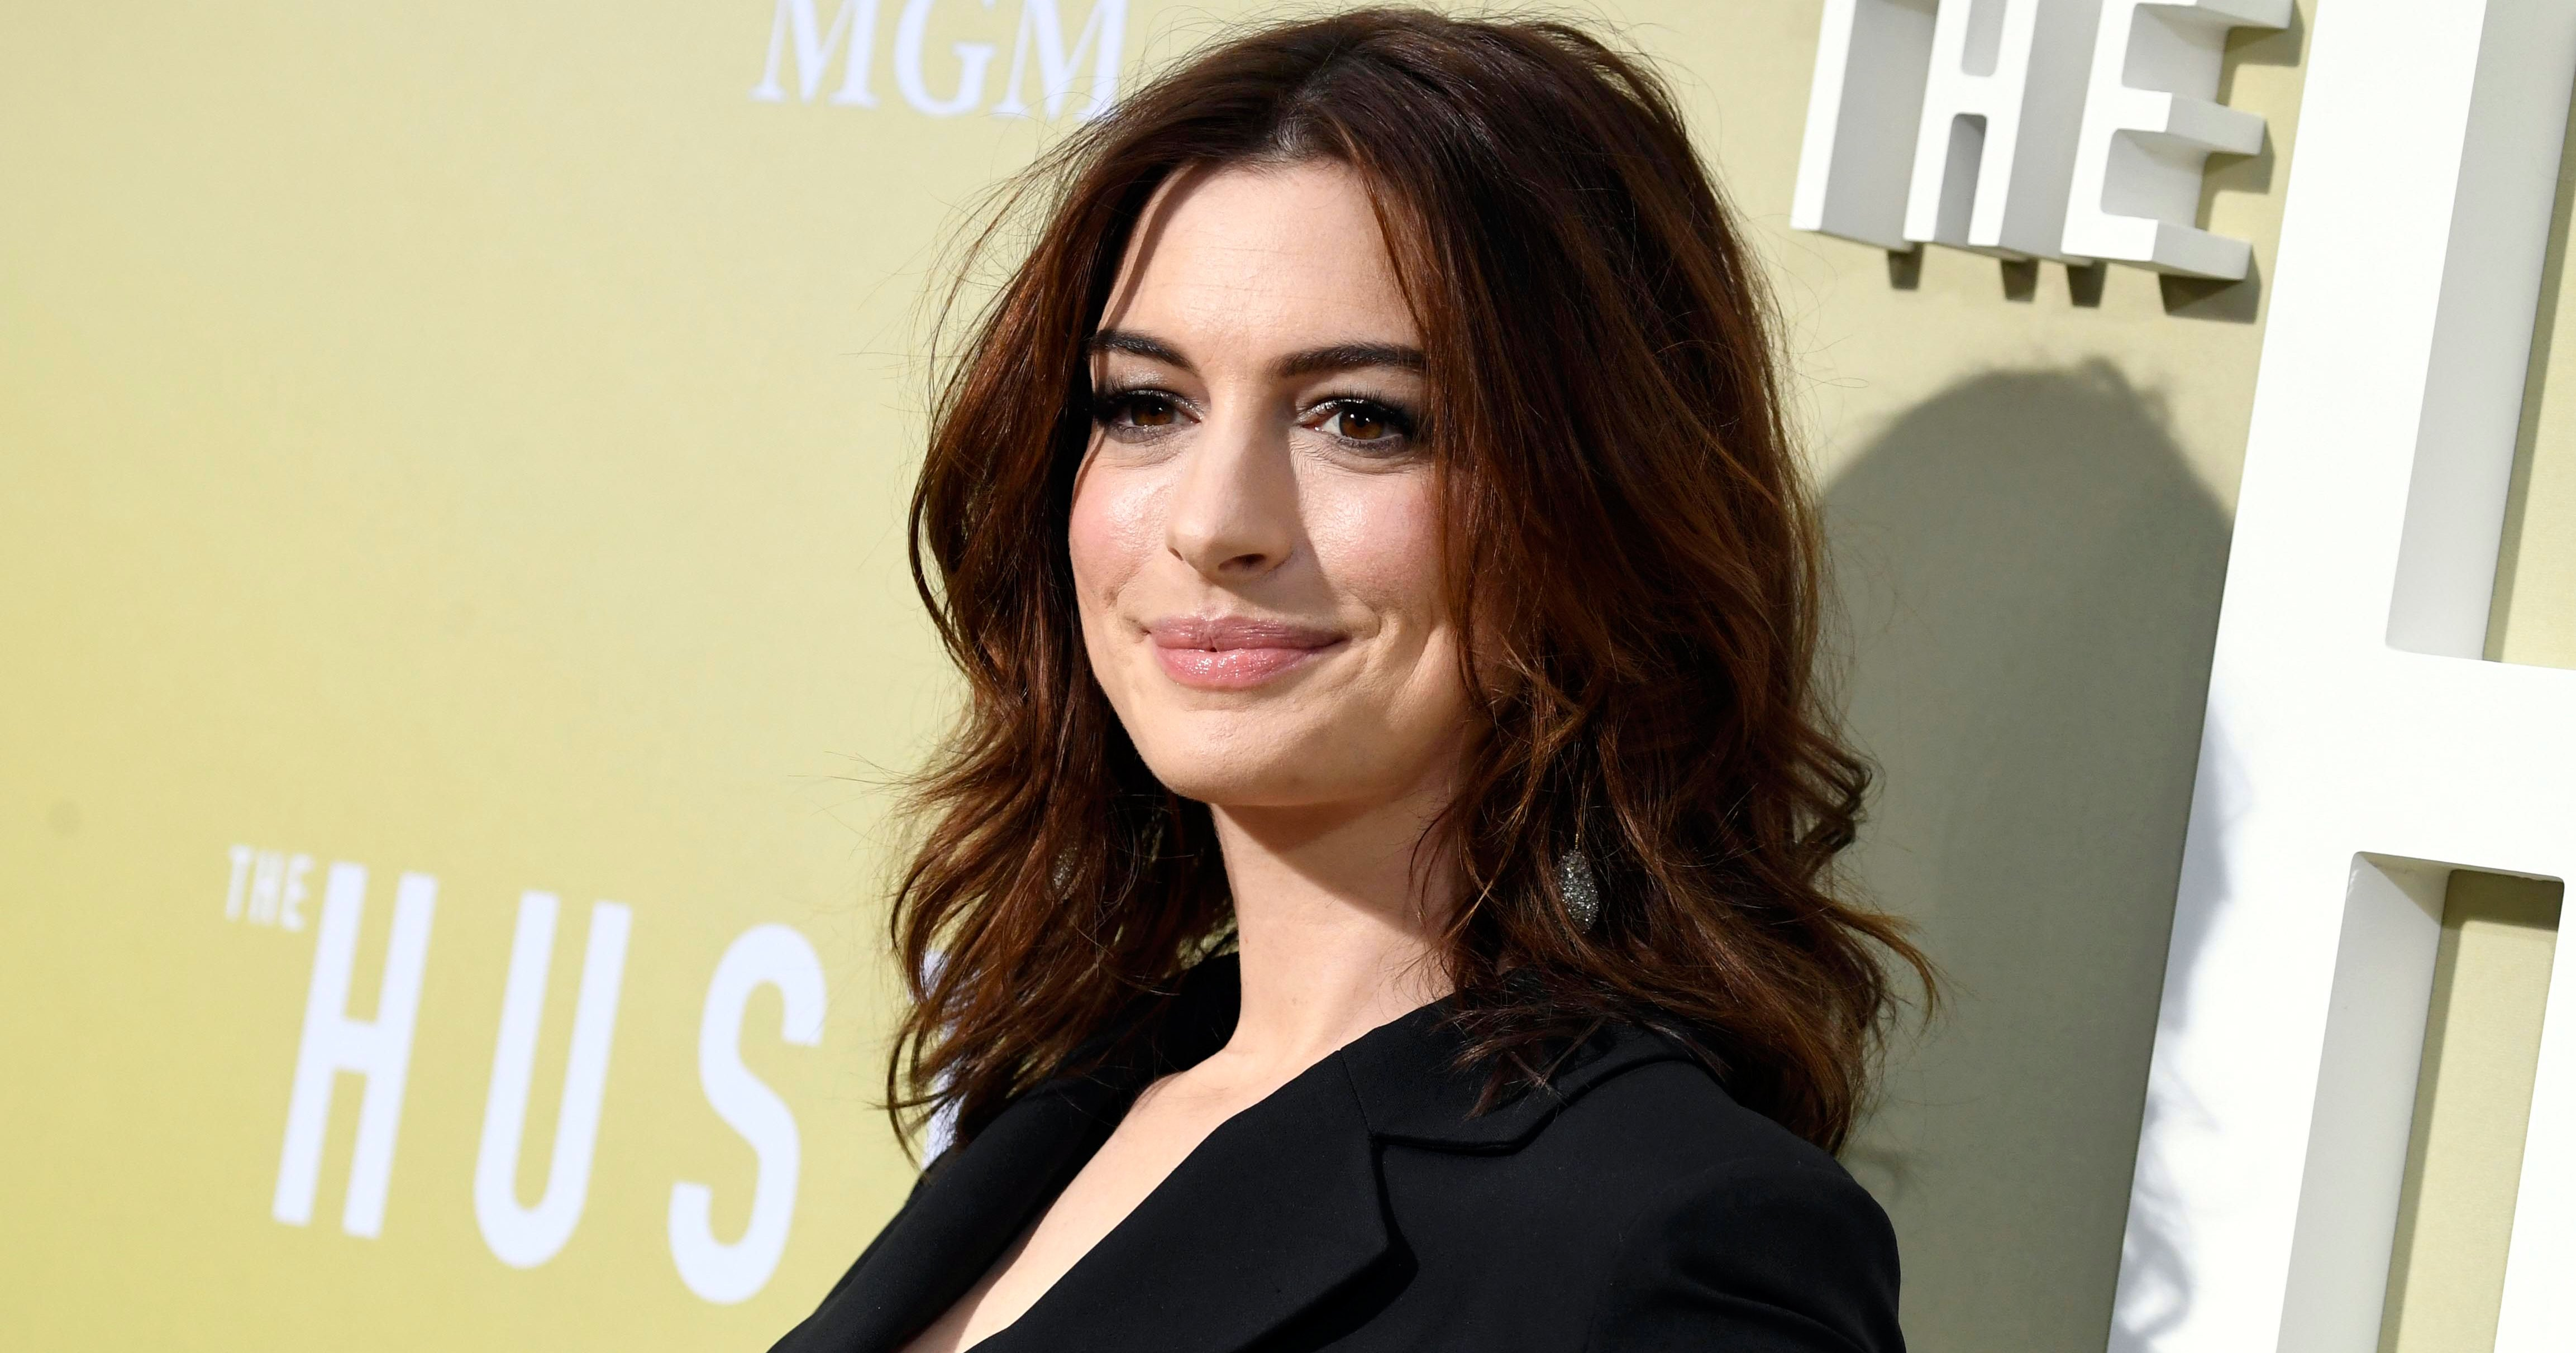 Anne Hathaway's Son Is 'Big Reason Why' She Joined 'Sesame Street'